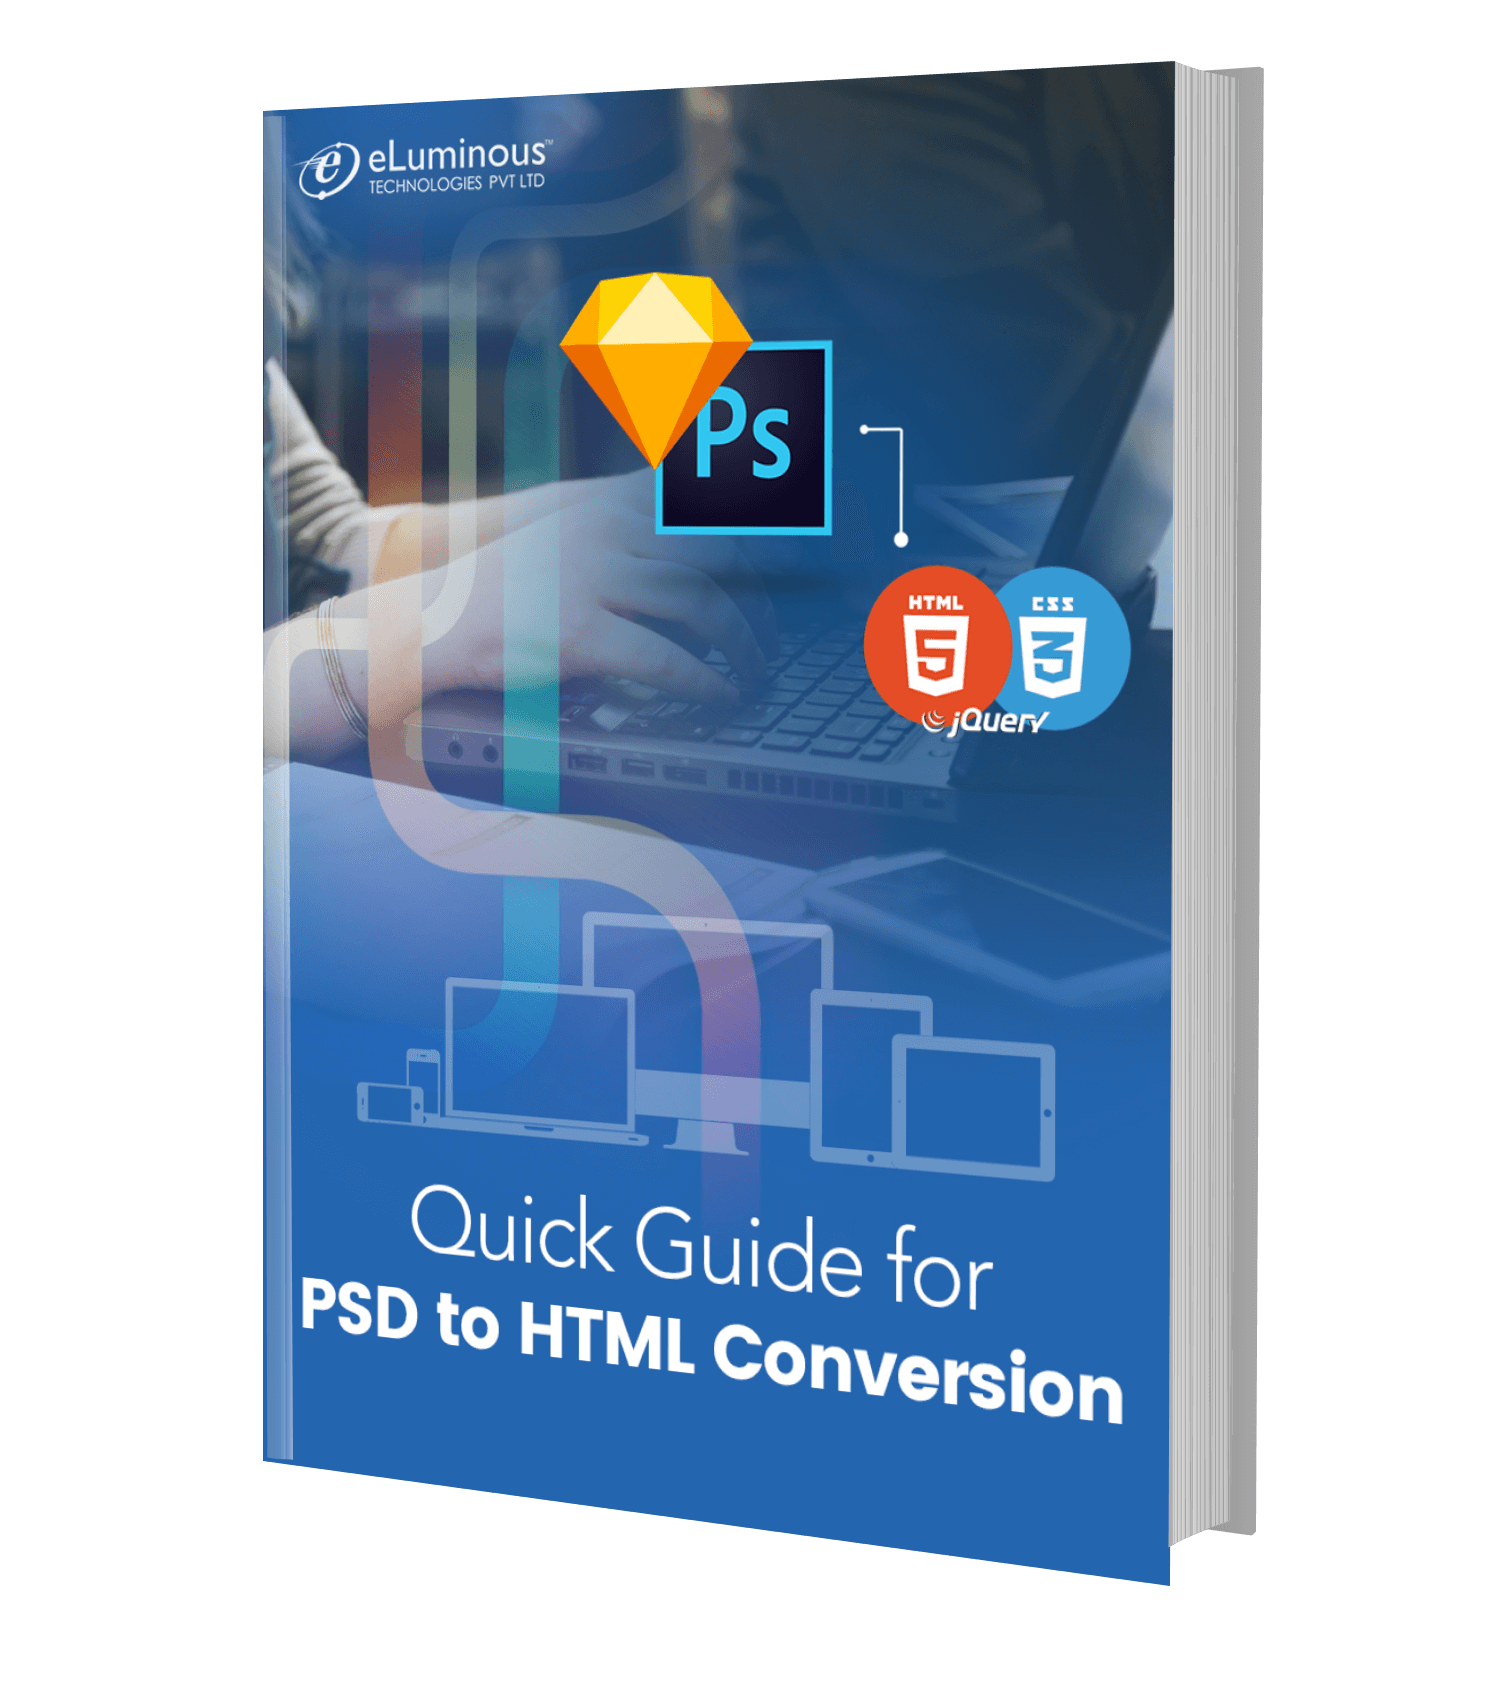 Quick Guide for PSD to HTML Conversion